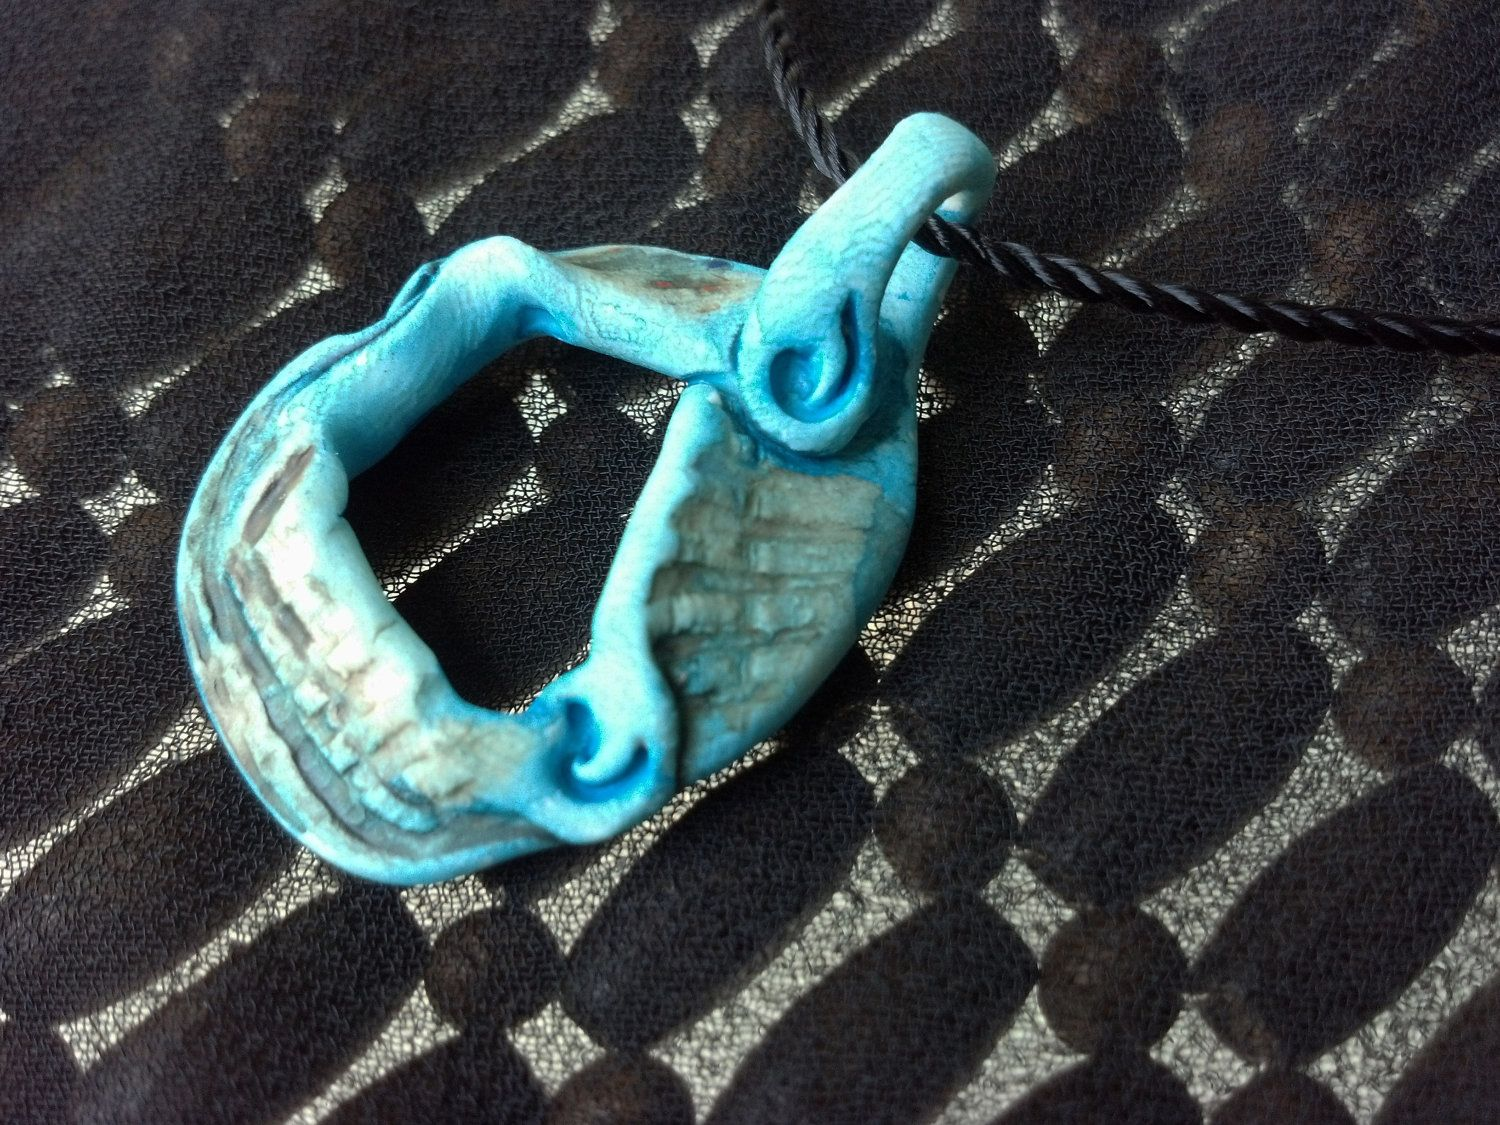 Wave Handcrafted Polymer Clay Pendant with Acrylic Wash. $18.00, via Etsy.